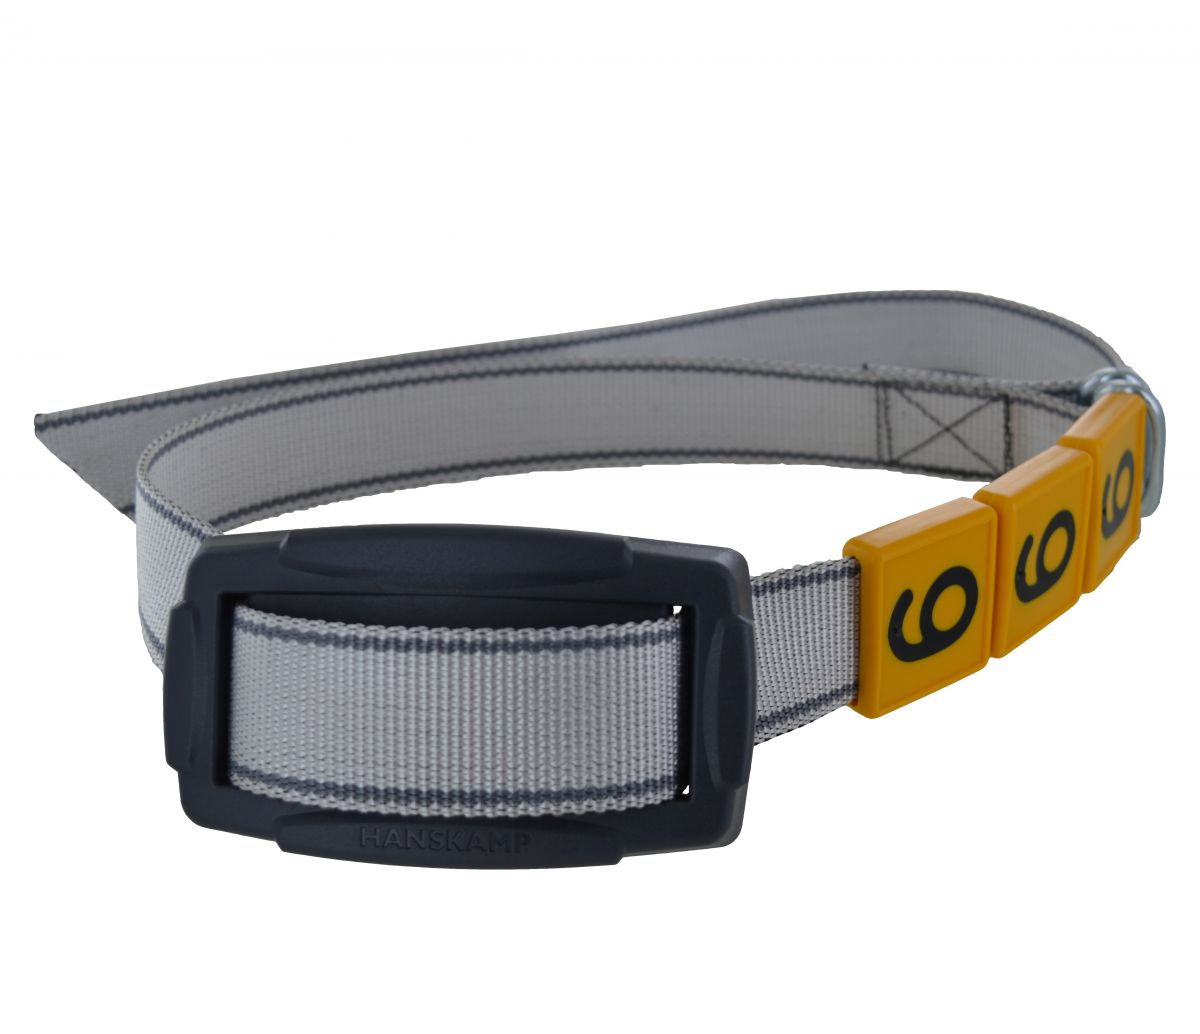 set with spidertag neck strap and id numbers for 100 animals no 1 100